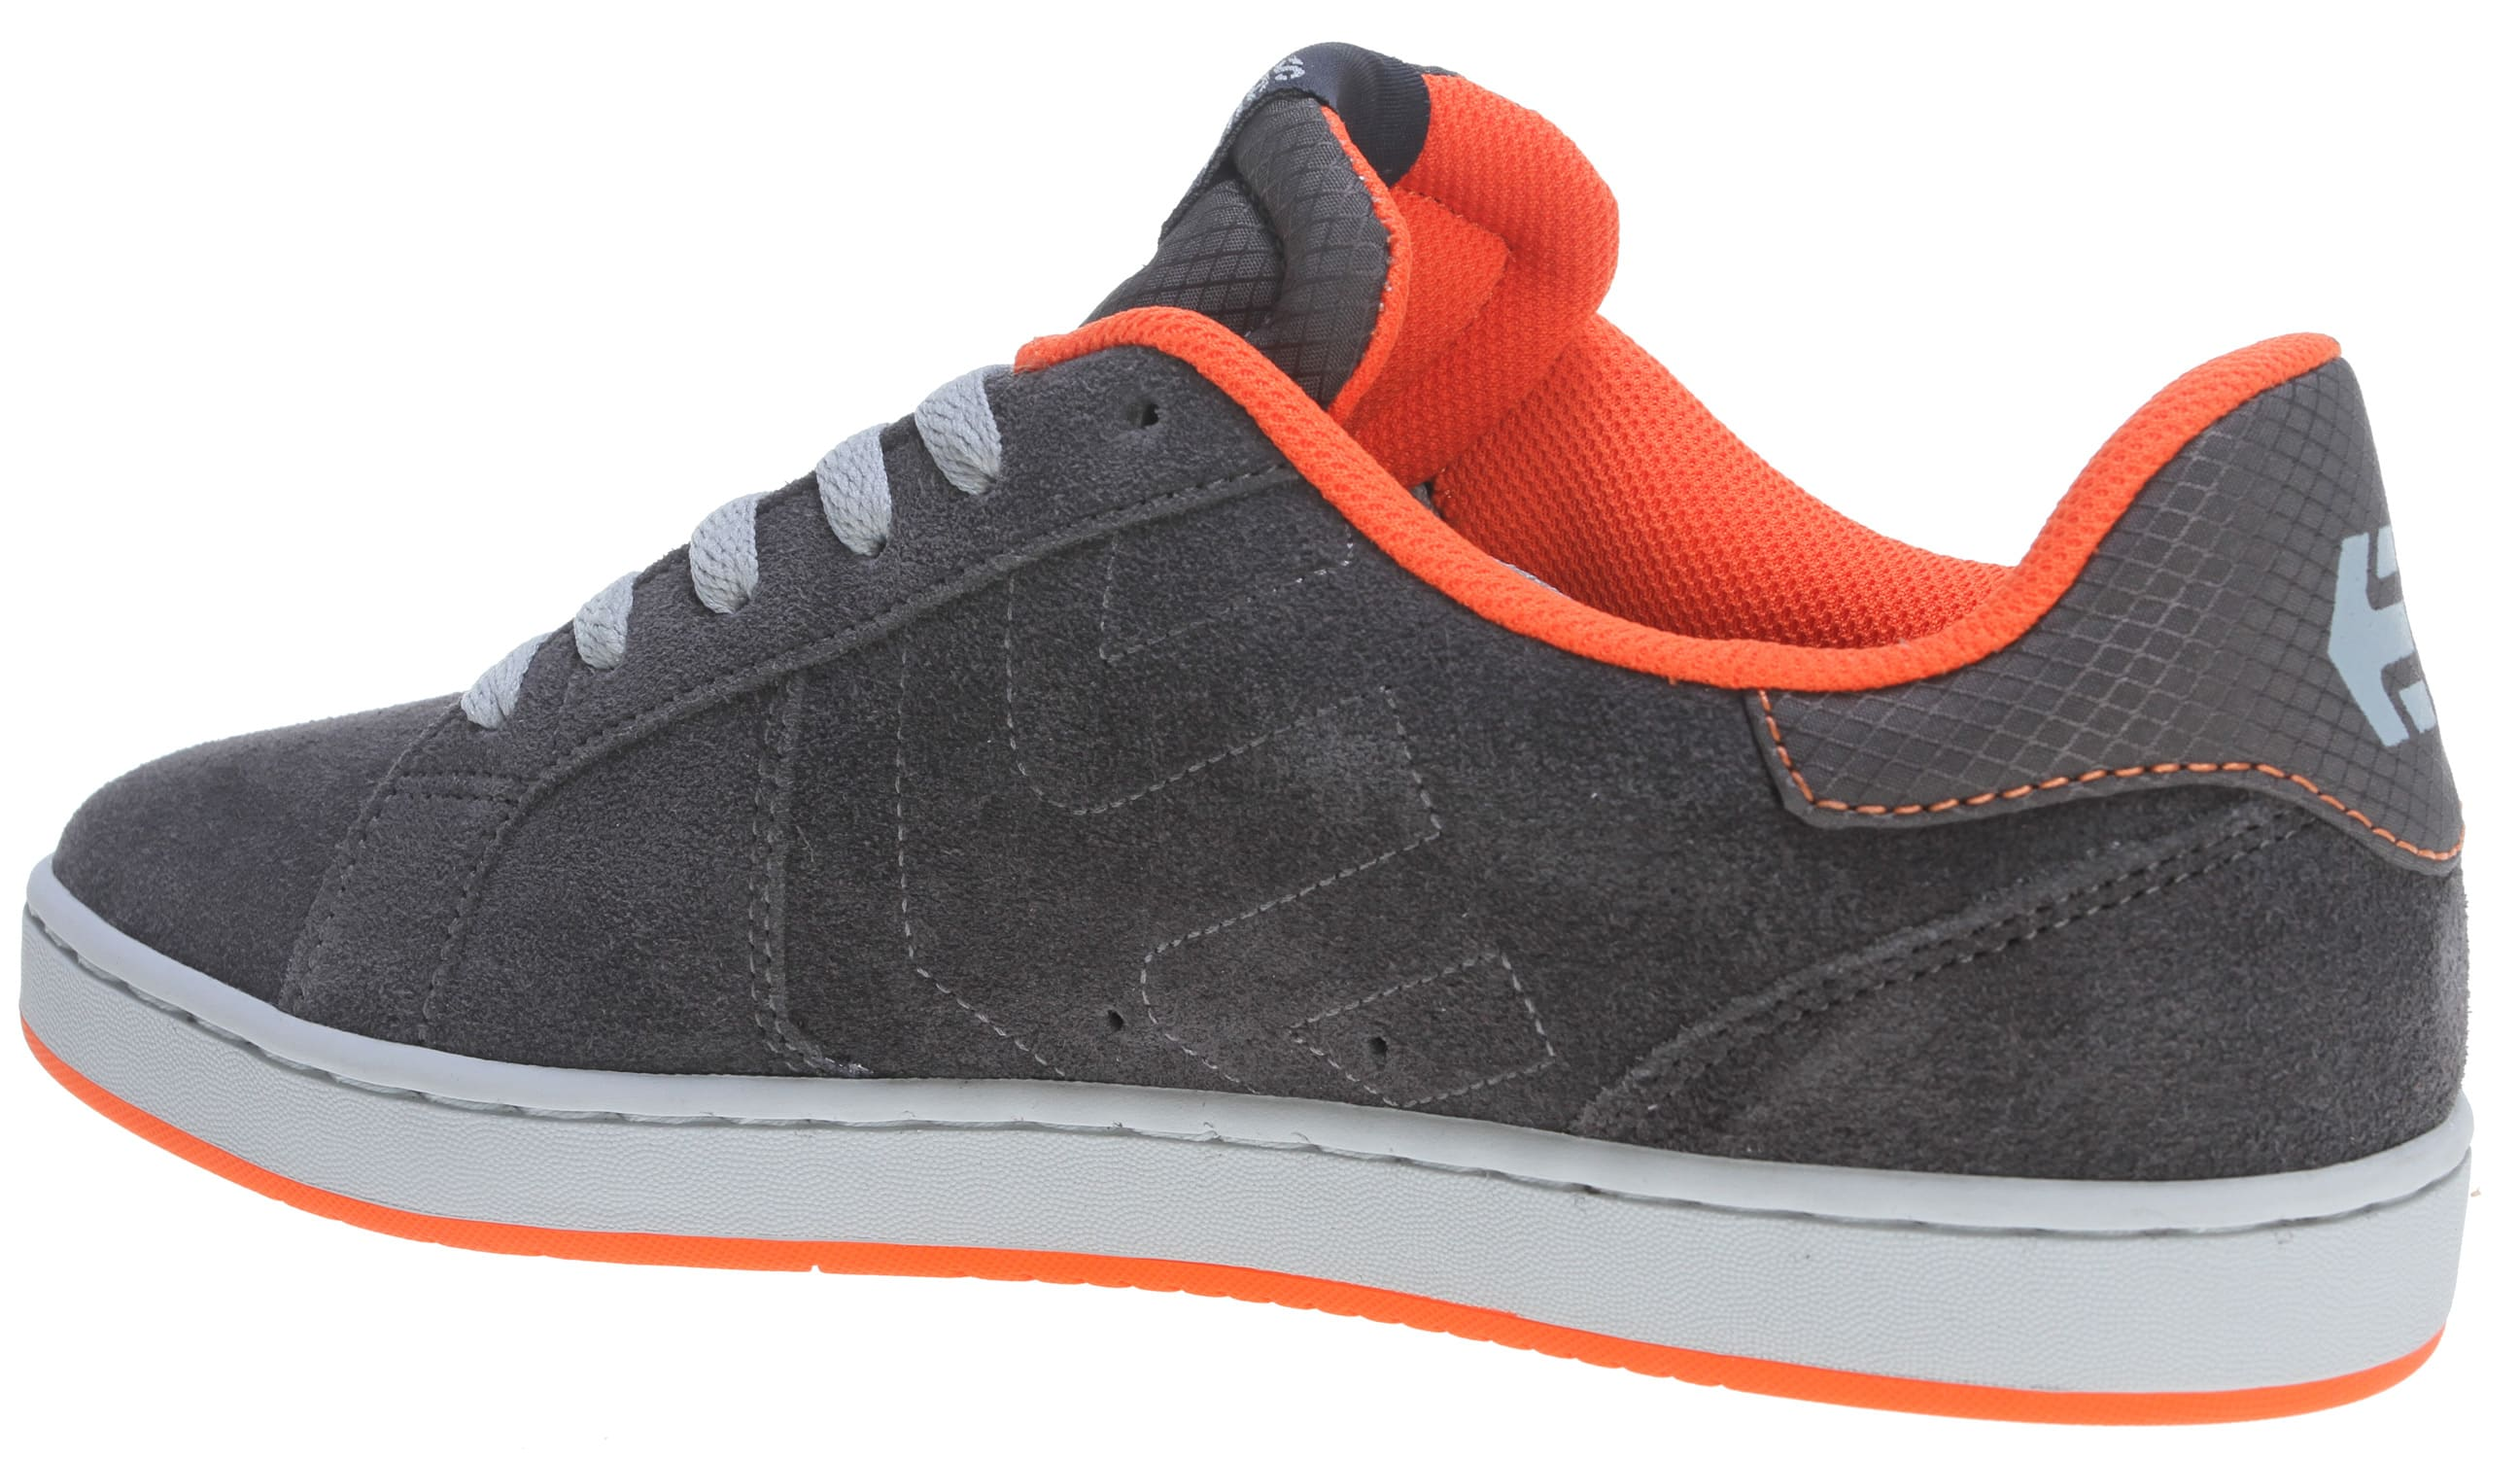 Limited Edition For Sale Cheap Price Wholesale Mens Fader Ls Skateboarding Shoes Etnies Official Outlet Eastbay Newest For Sale uOaKfG